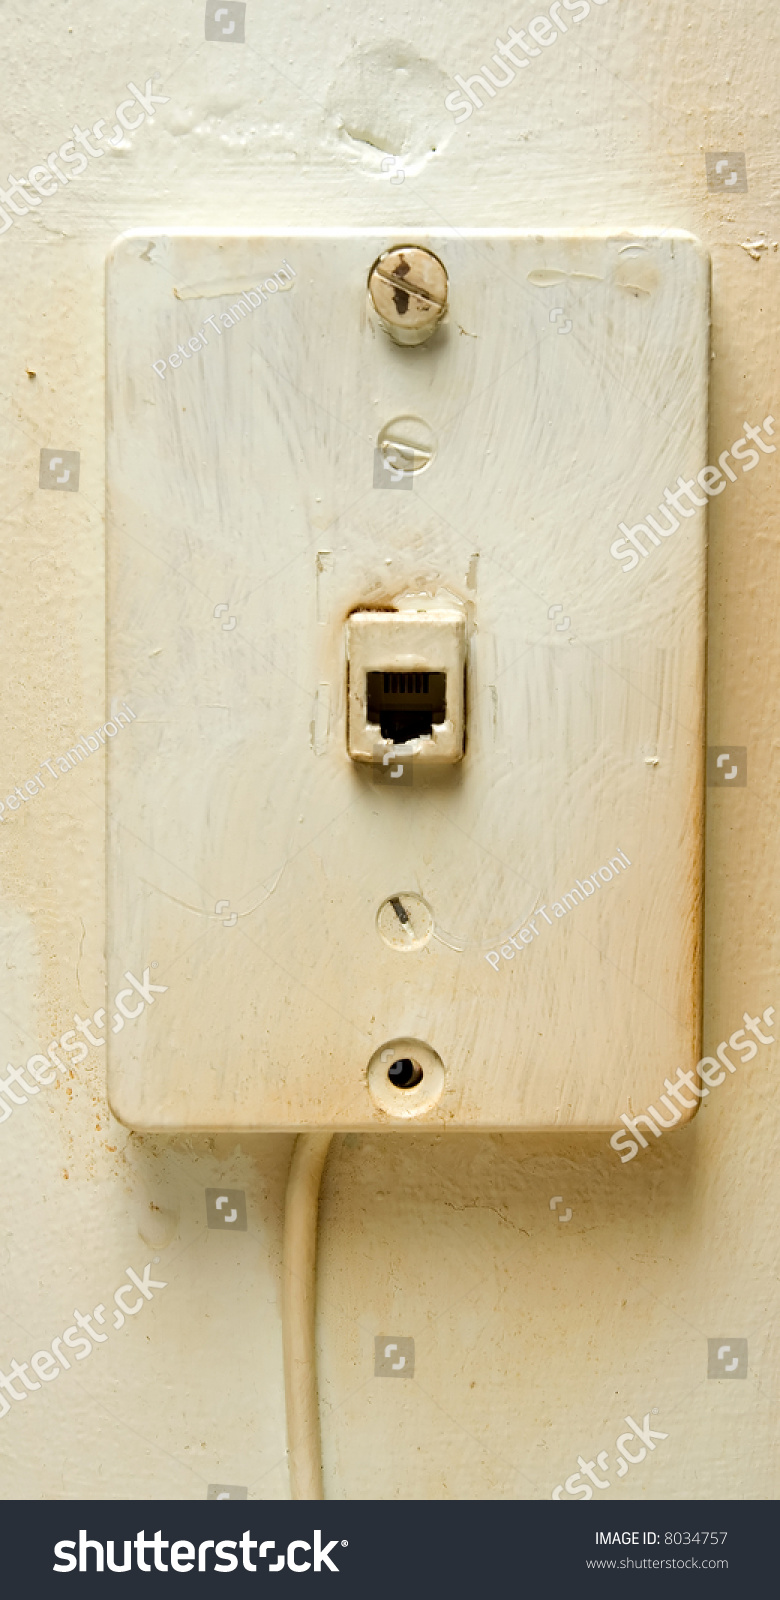 hight resolution of an old analog phone jack on a discolored wall